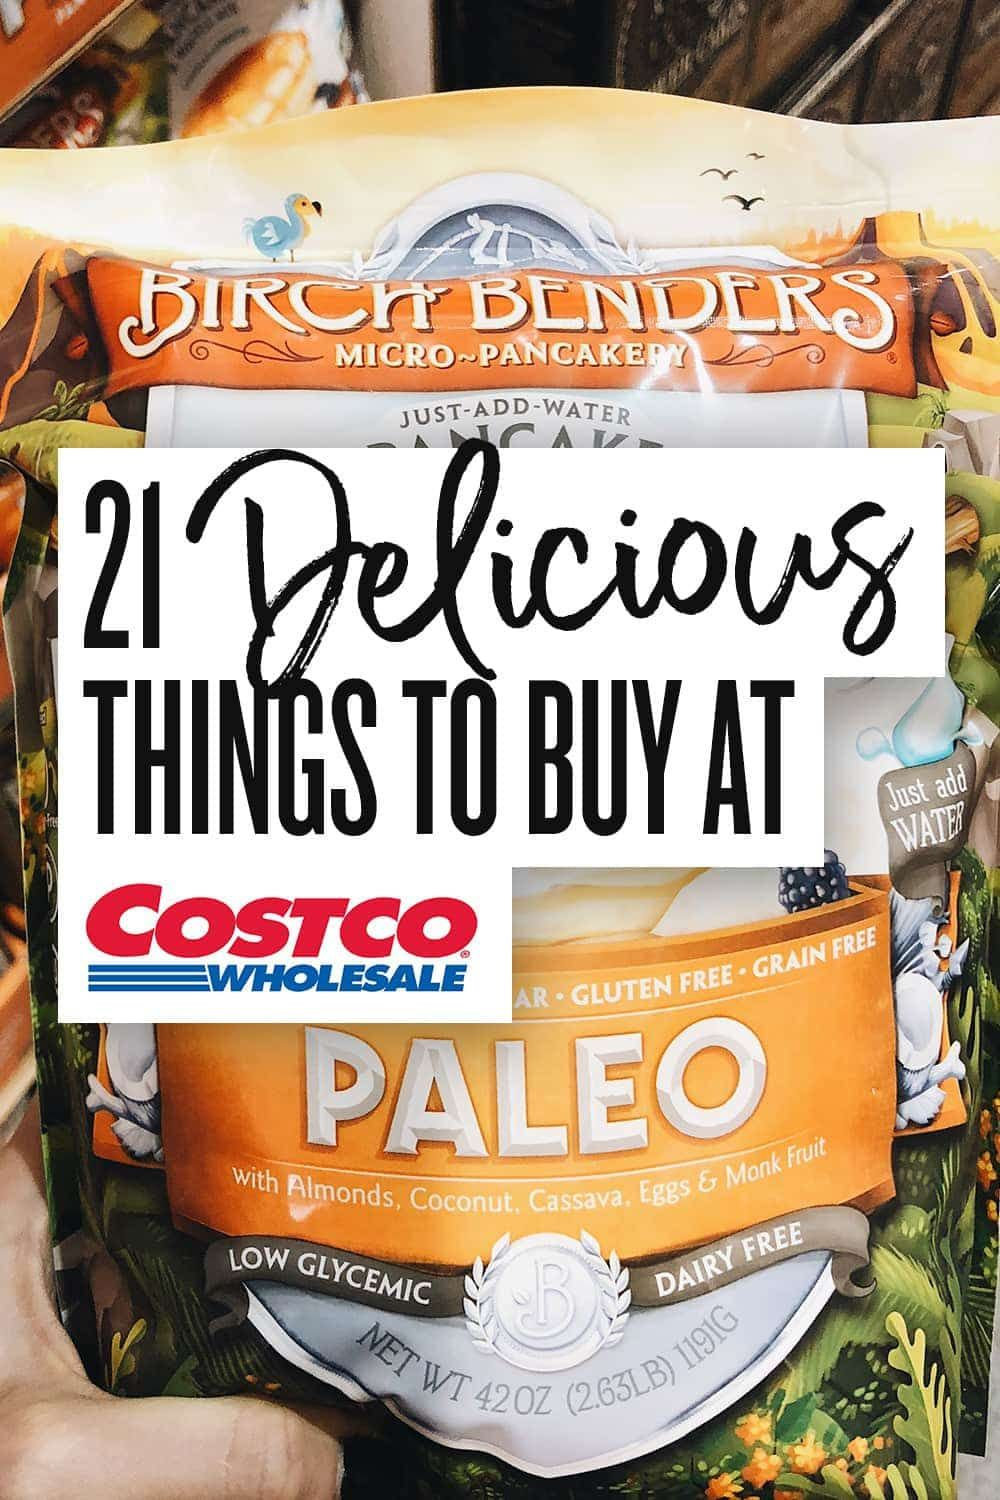 21 Delicious Best Buys At Costco With Images Best Costco Food